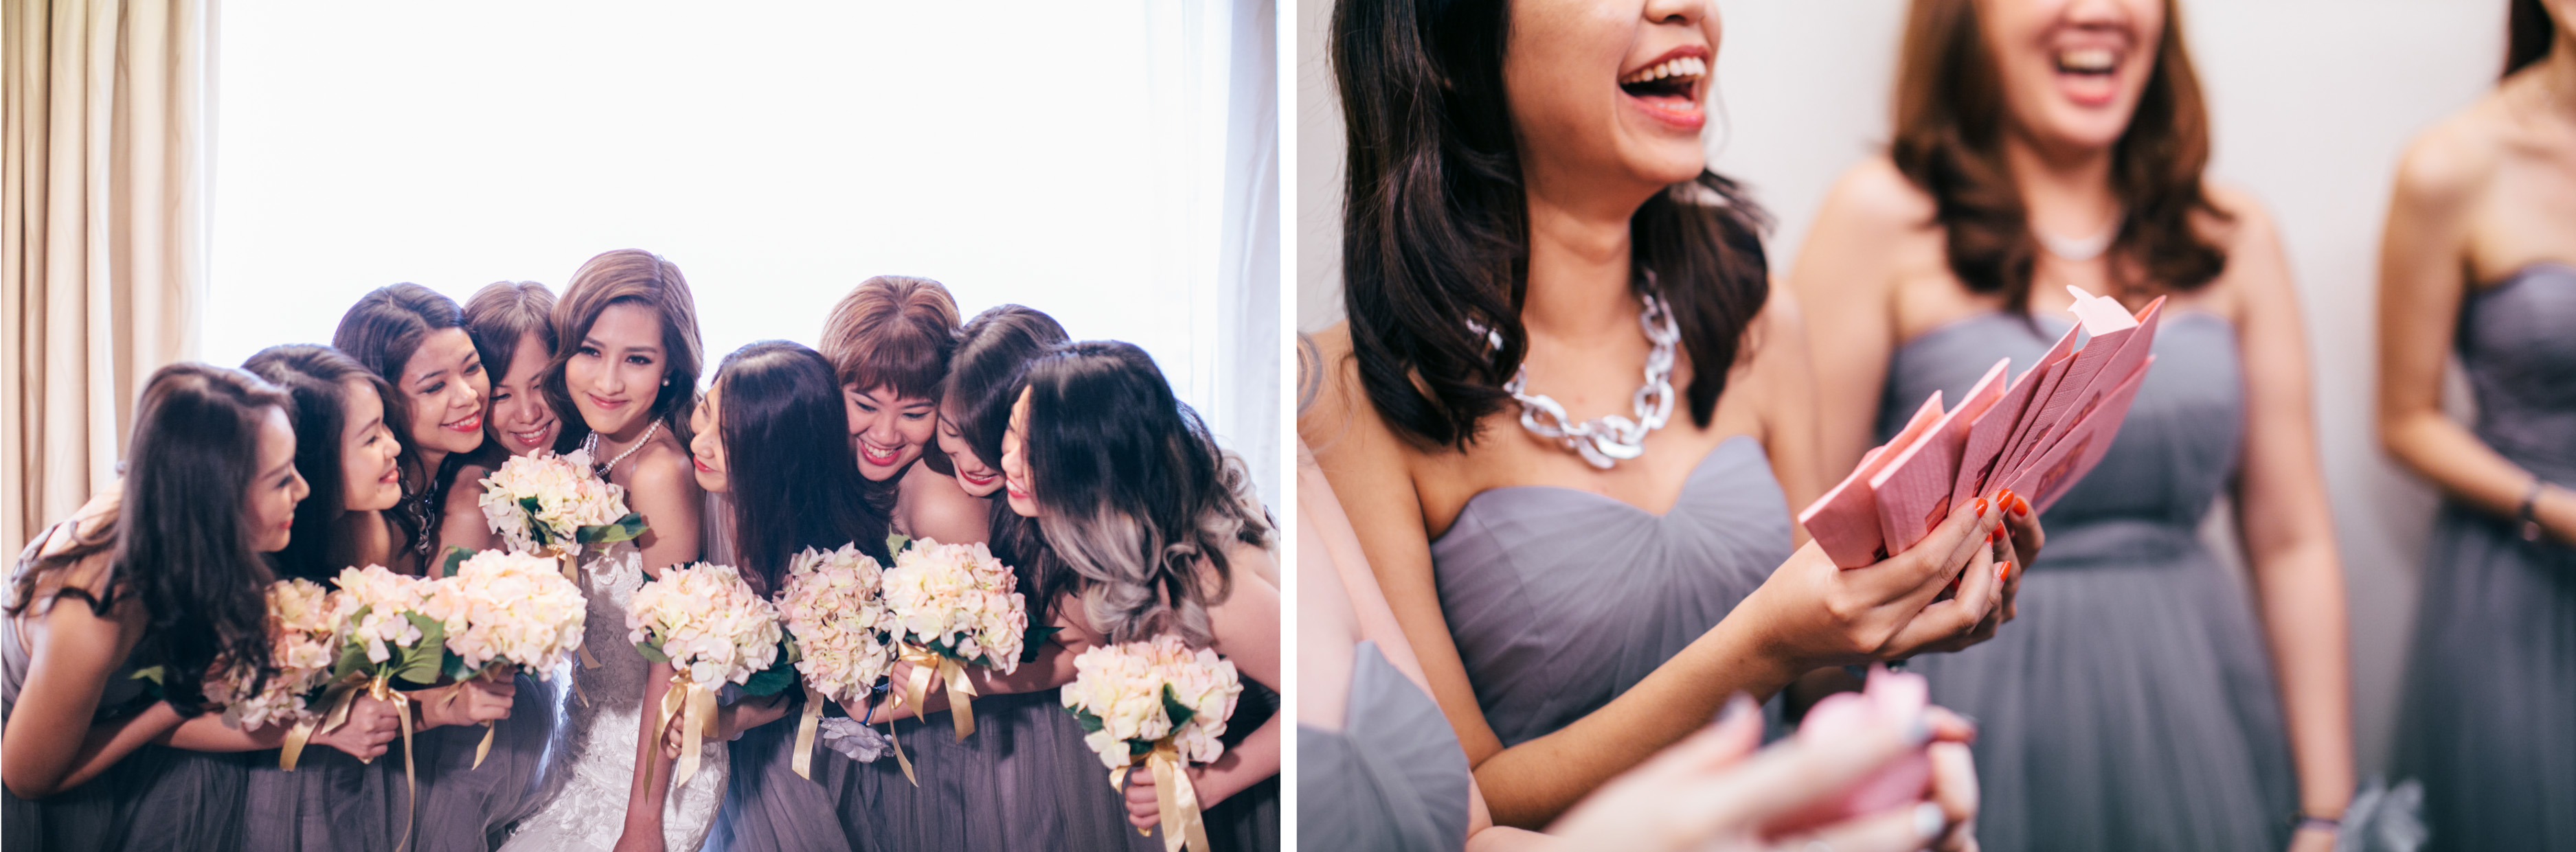 46-hellojanelee-kenneth-proposal-wedding-malaysia